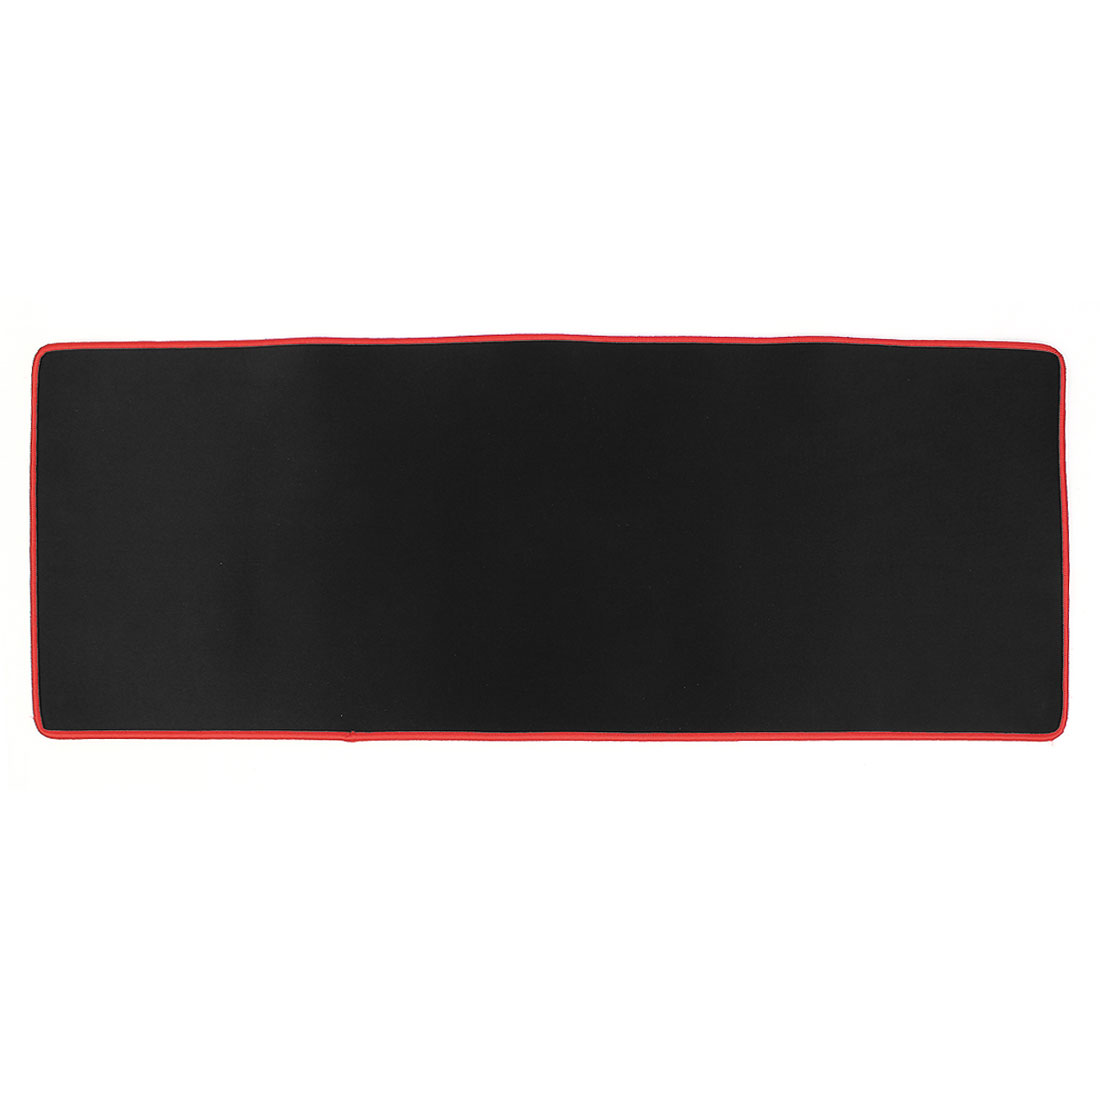 Black Red 775mmx300mmx5mm Nonslip Soft Neoprene Desktop Computer Game Mouse Pad